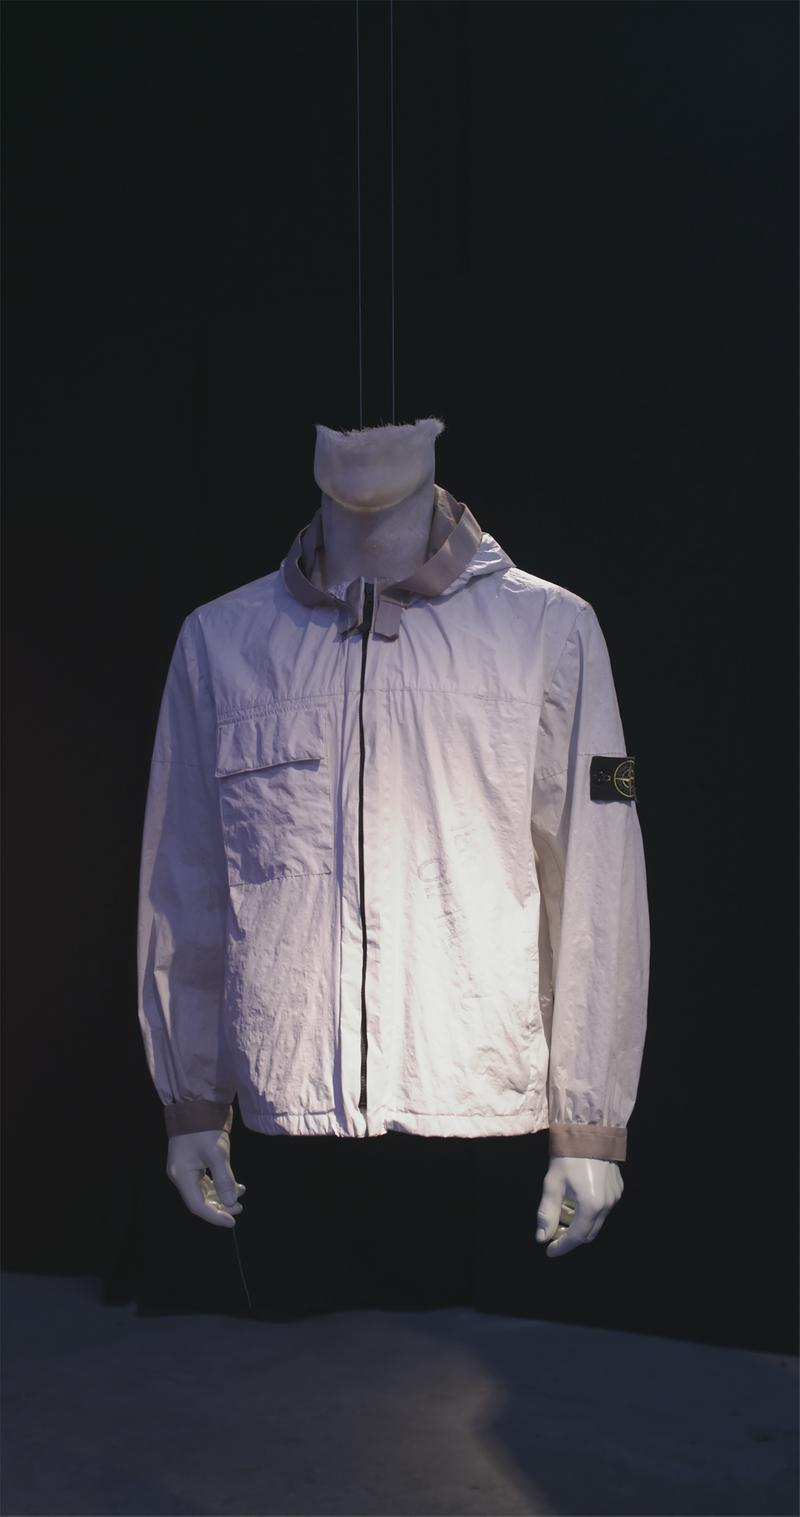 White zip up jacket with contrasting trim on the collar and cuffs and Stone Island badge on the upper left sleeve displayed on mannequin bust